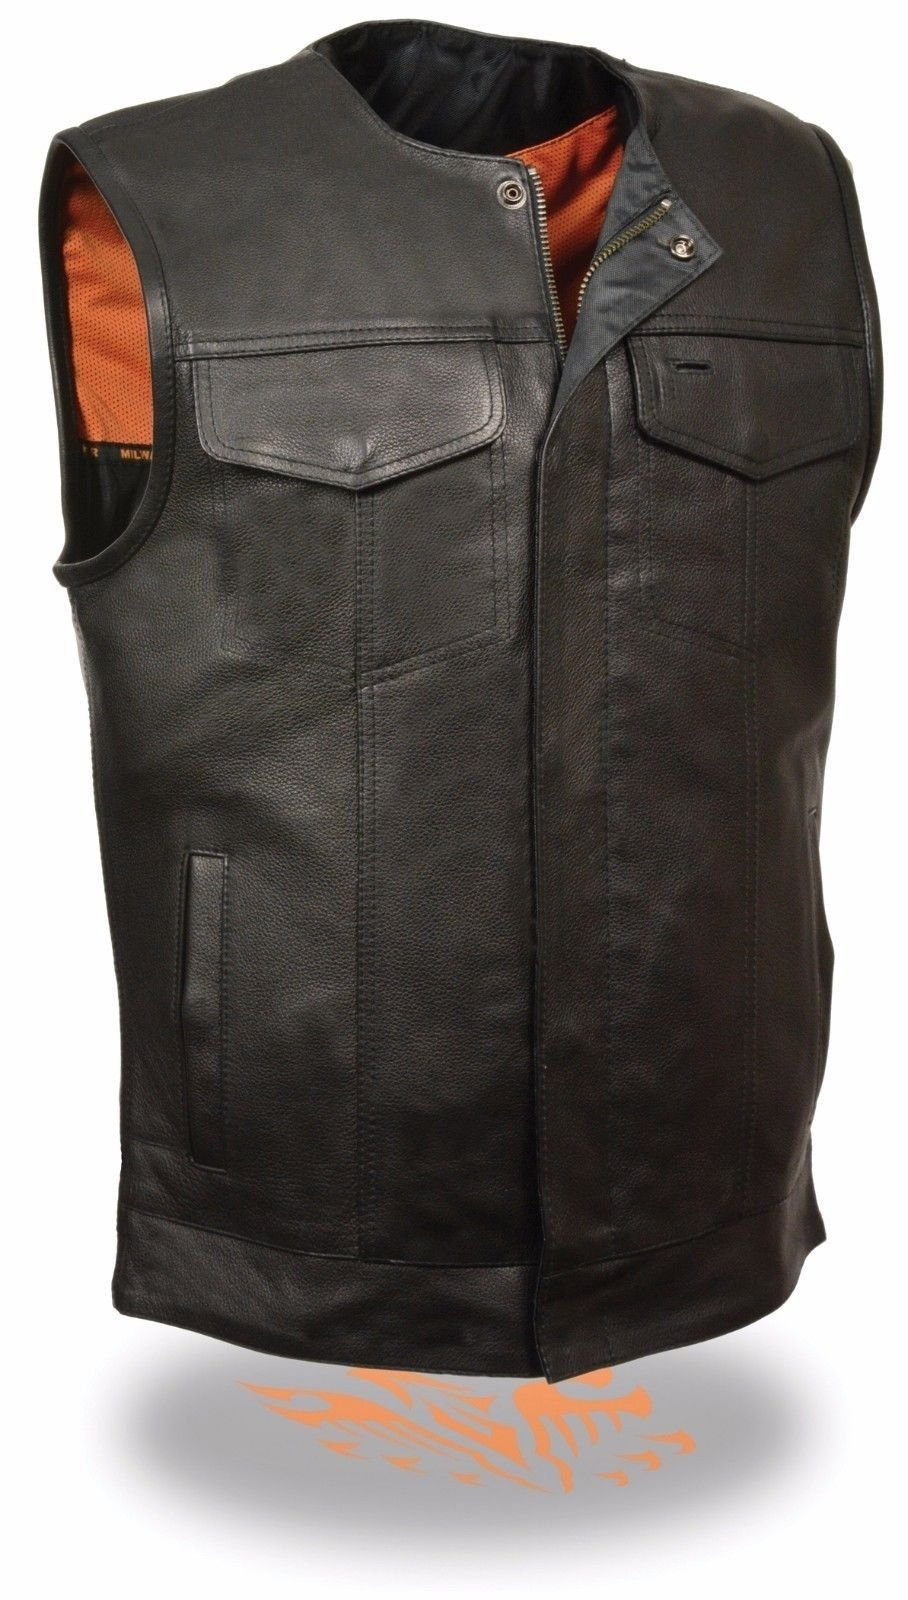 Milwaukee MEN'S MOTORCYCLE SON OF ANARCHY STYLE BUTTER SOFT LEATHER VEST W/O COLLAR NEW (XL Regular)